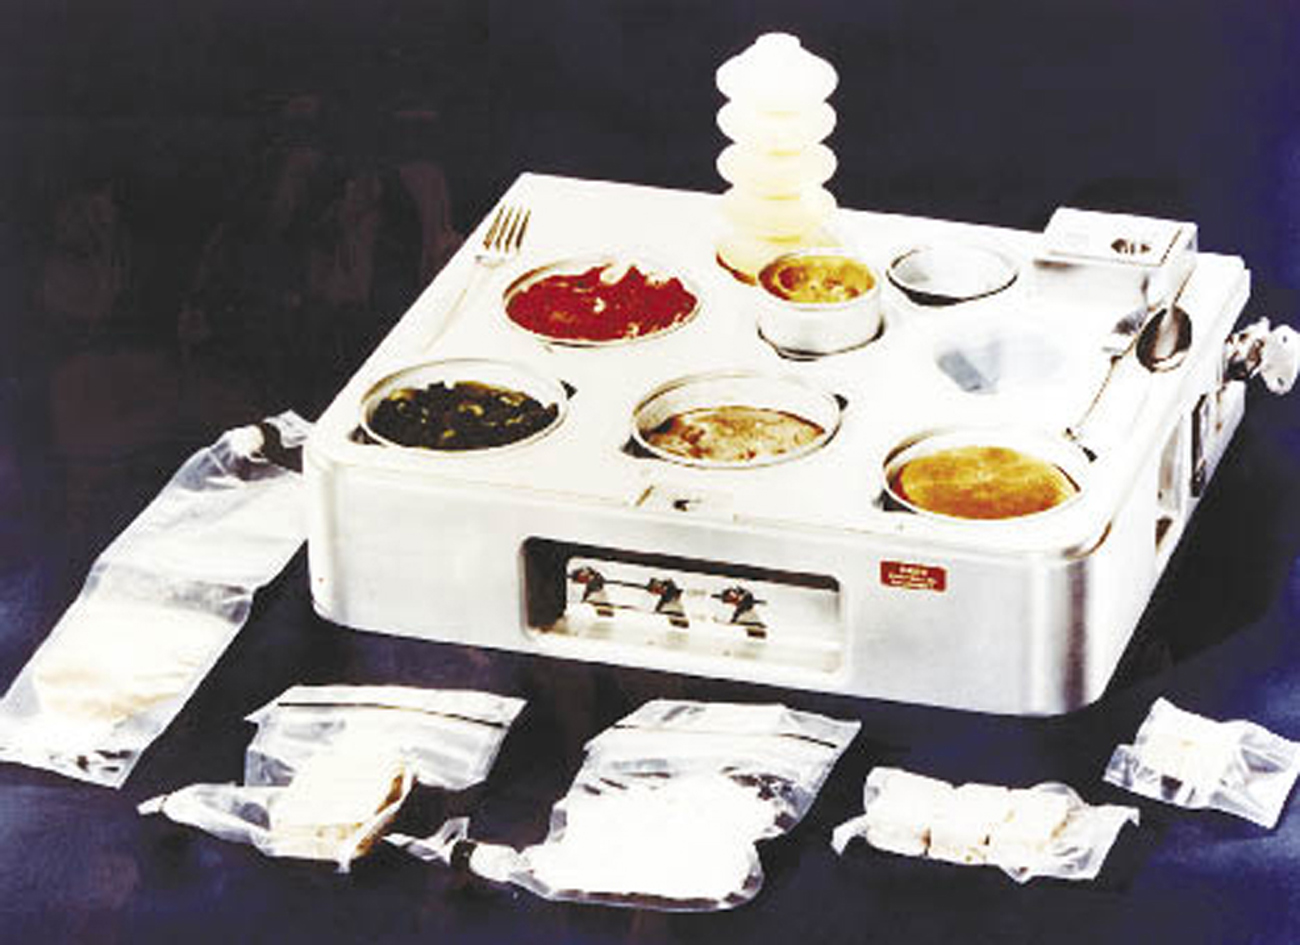 Skylab food heating and serving tray